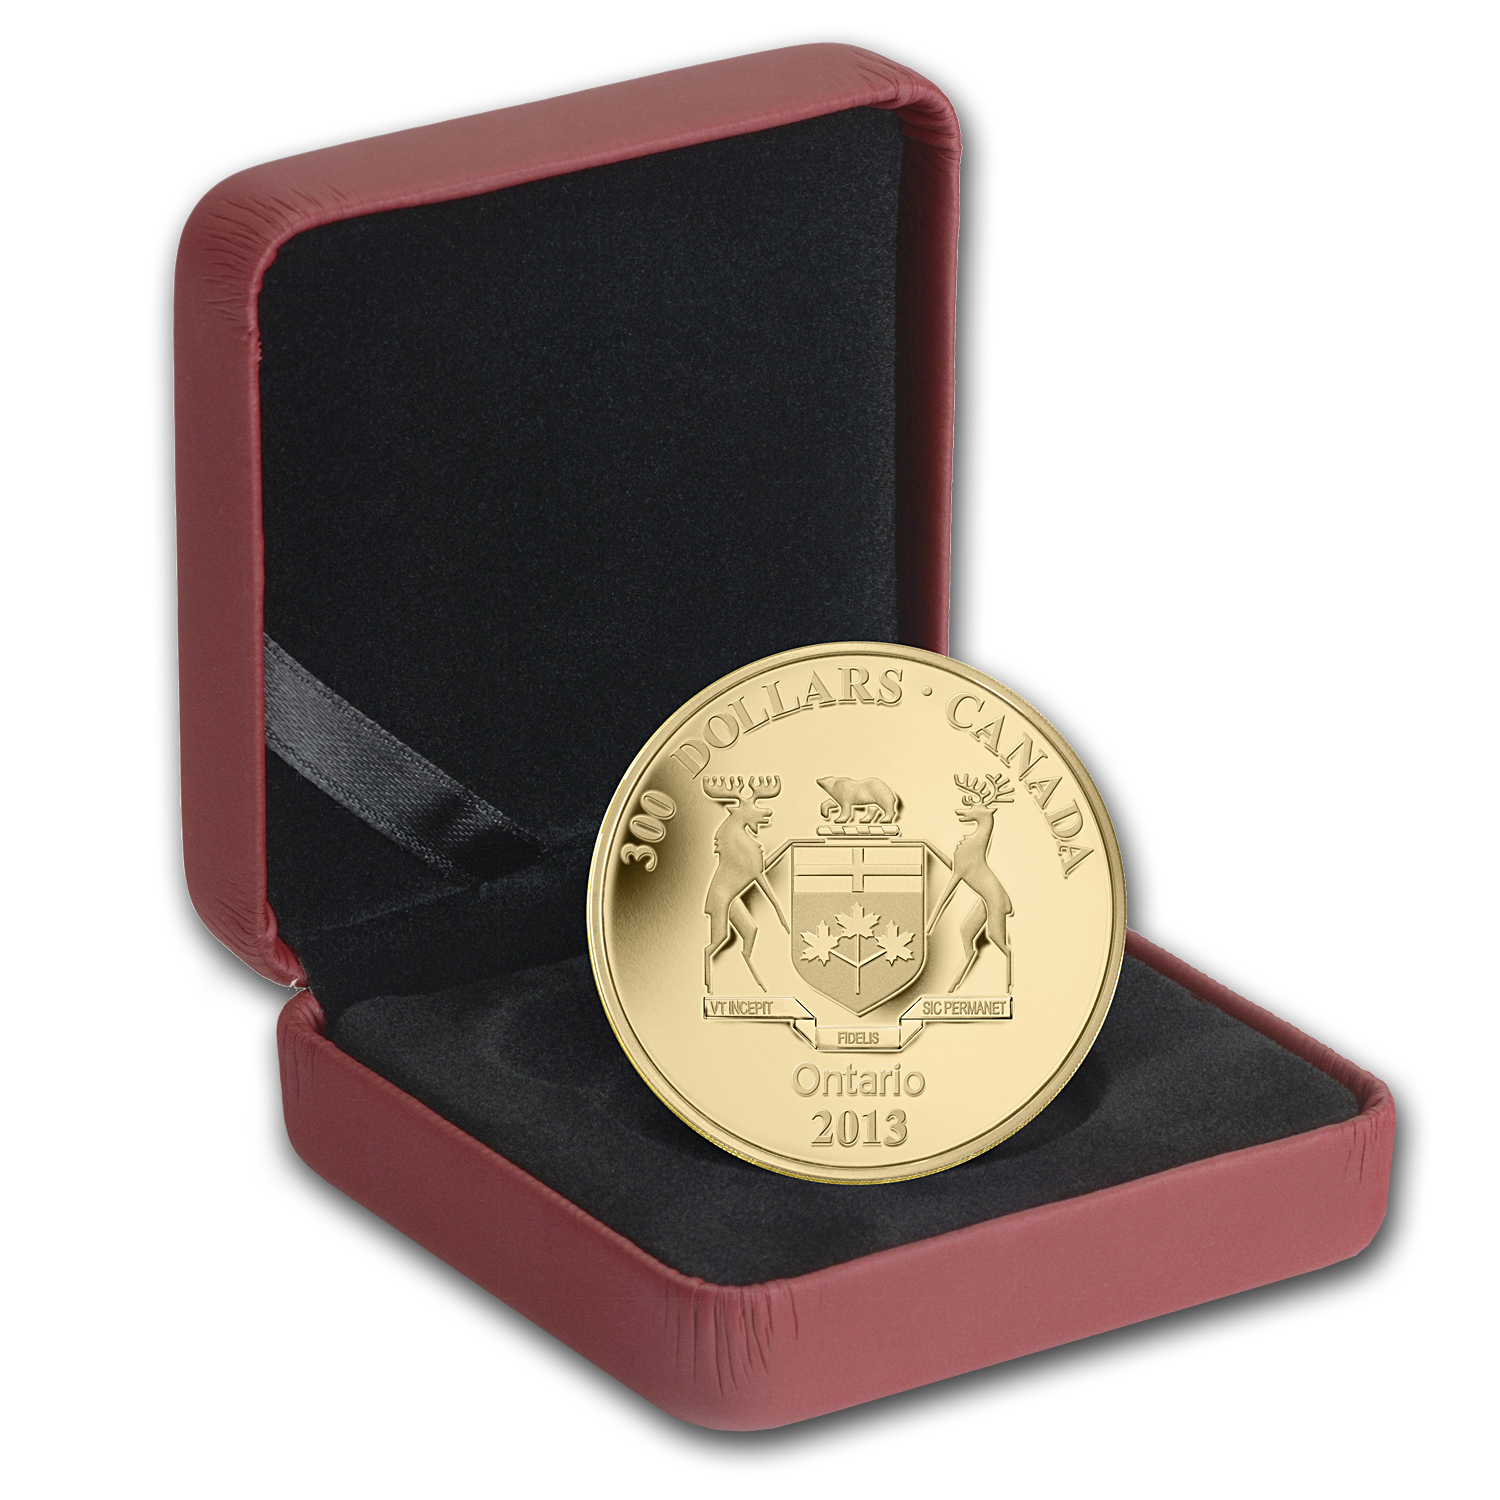 2013 1.125 oz Gold Canadian $300 Coin - Ontario Coat of Arms